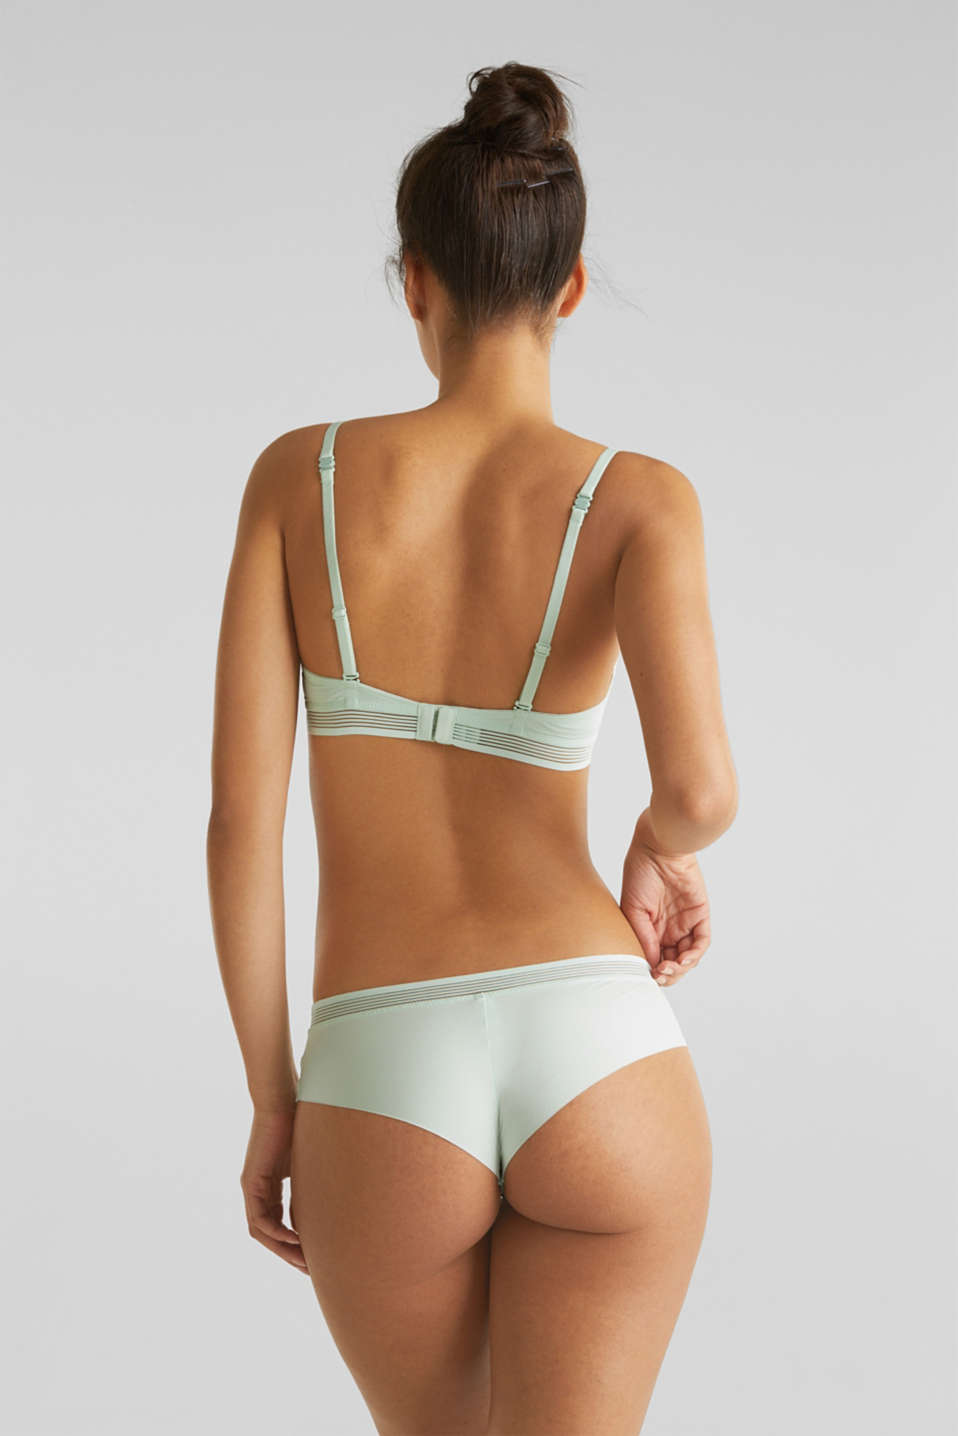 Unpadded underwire bra with sheer stripes, LIGHT AQUA GREEN, detail image number 1